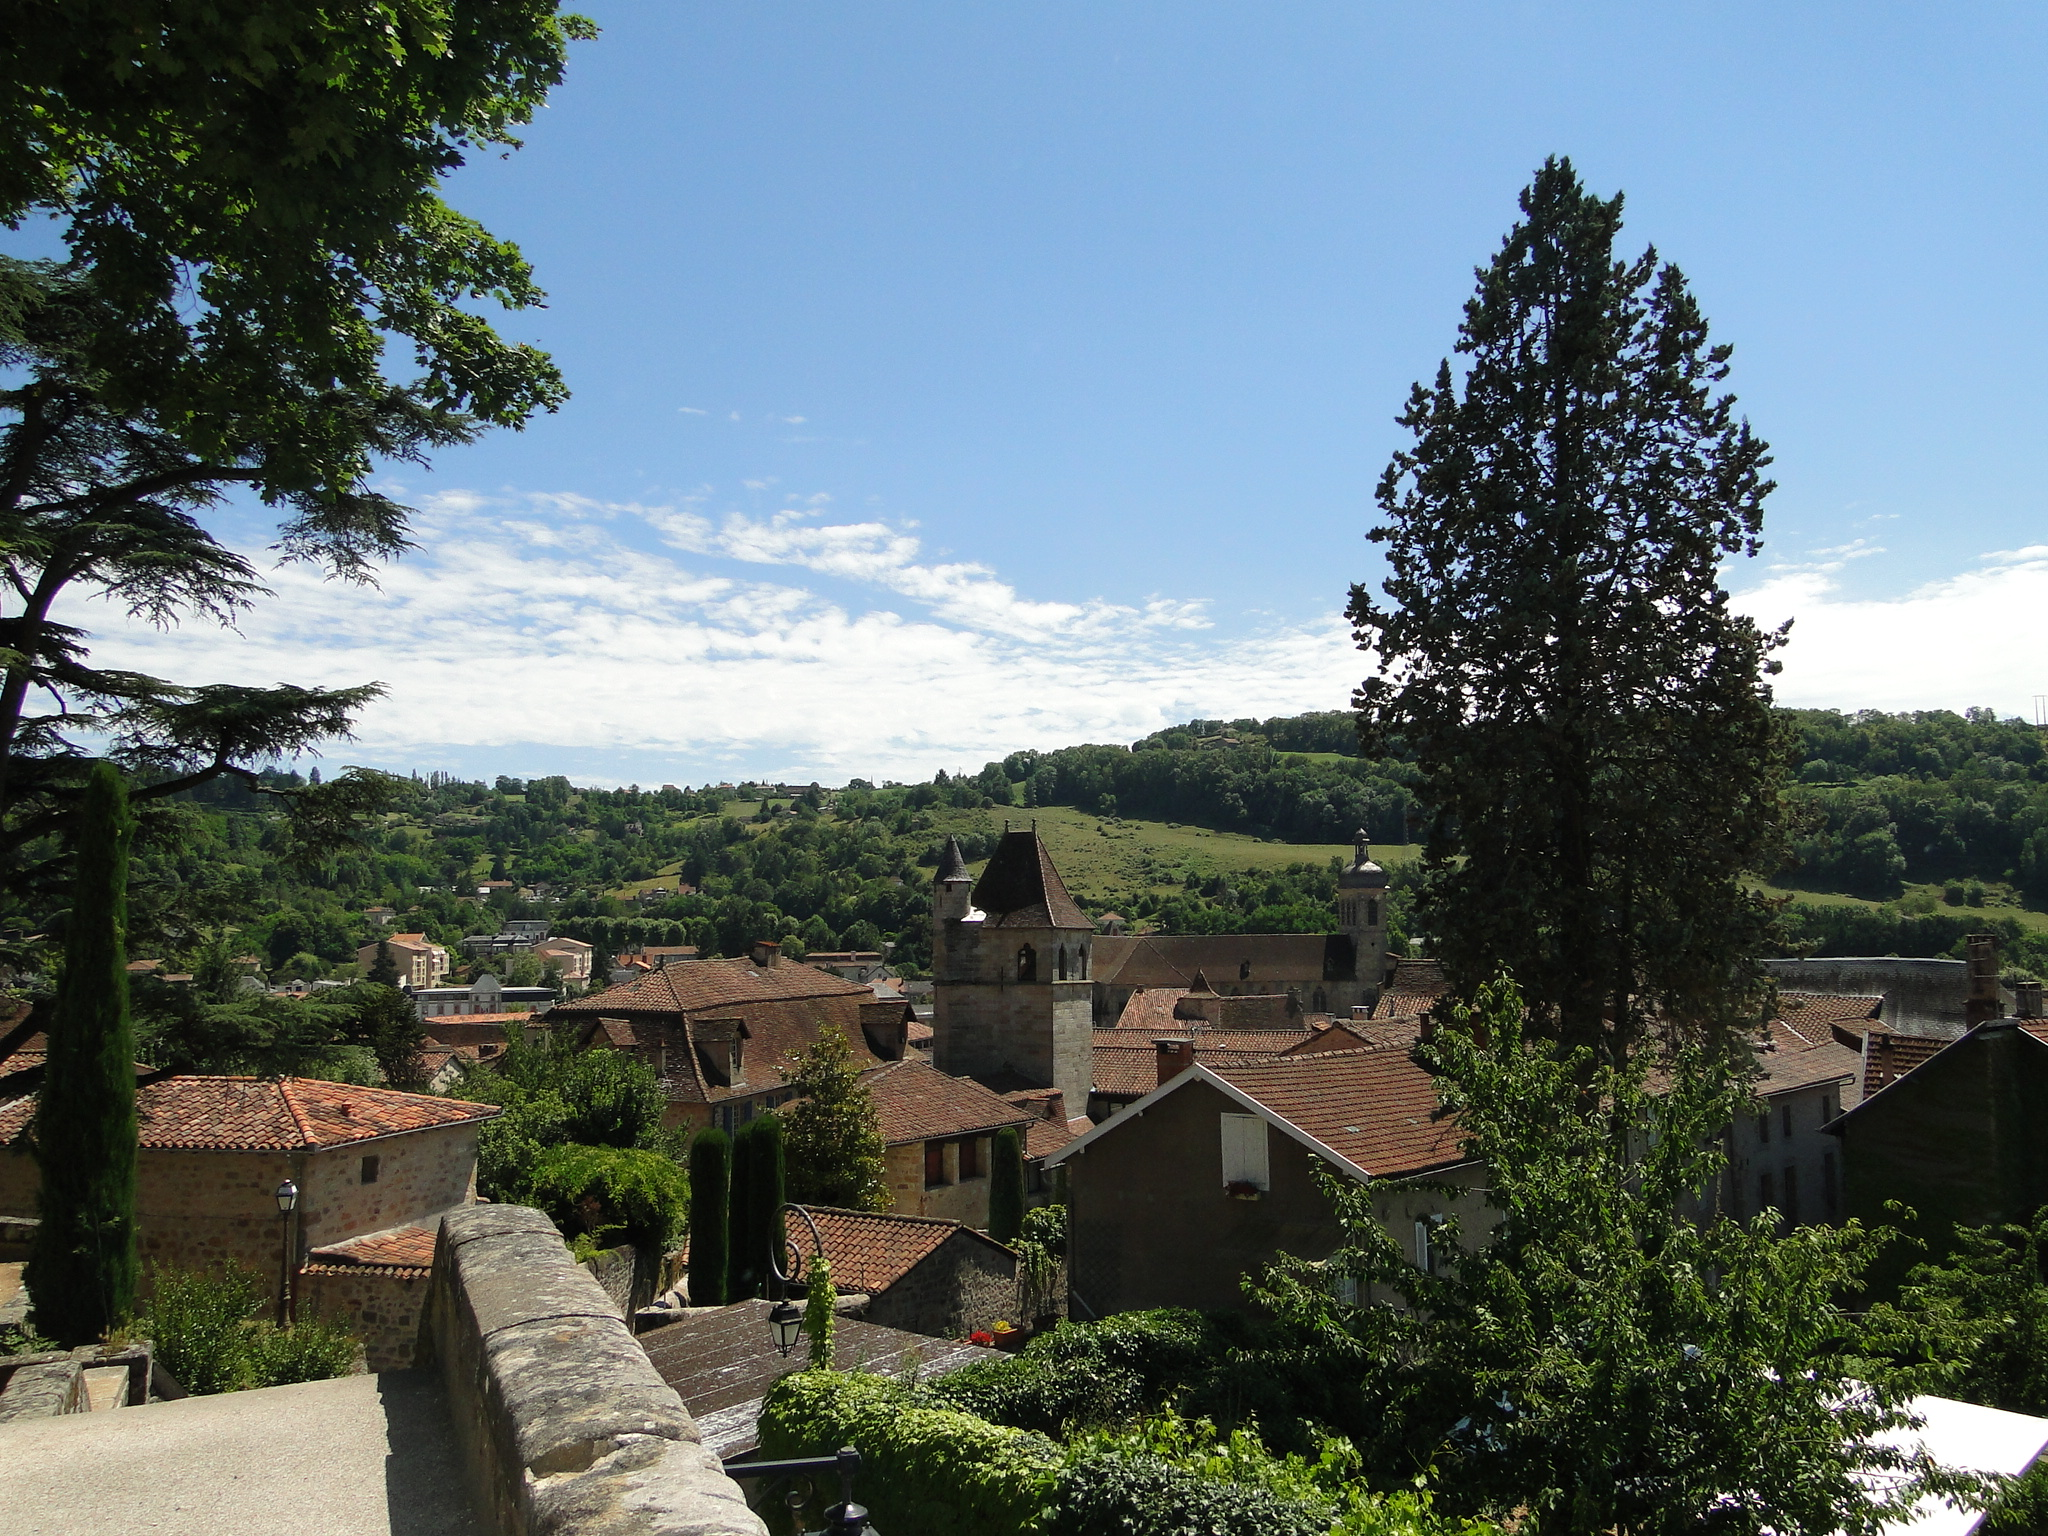 A view of Figeac